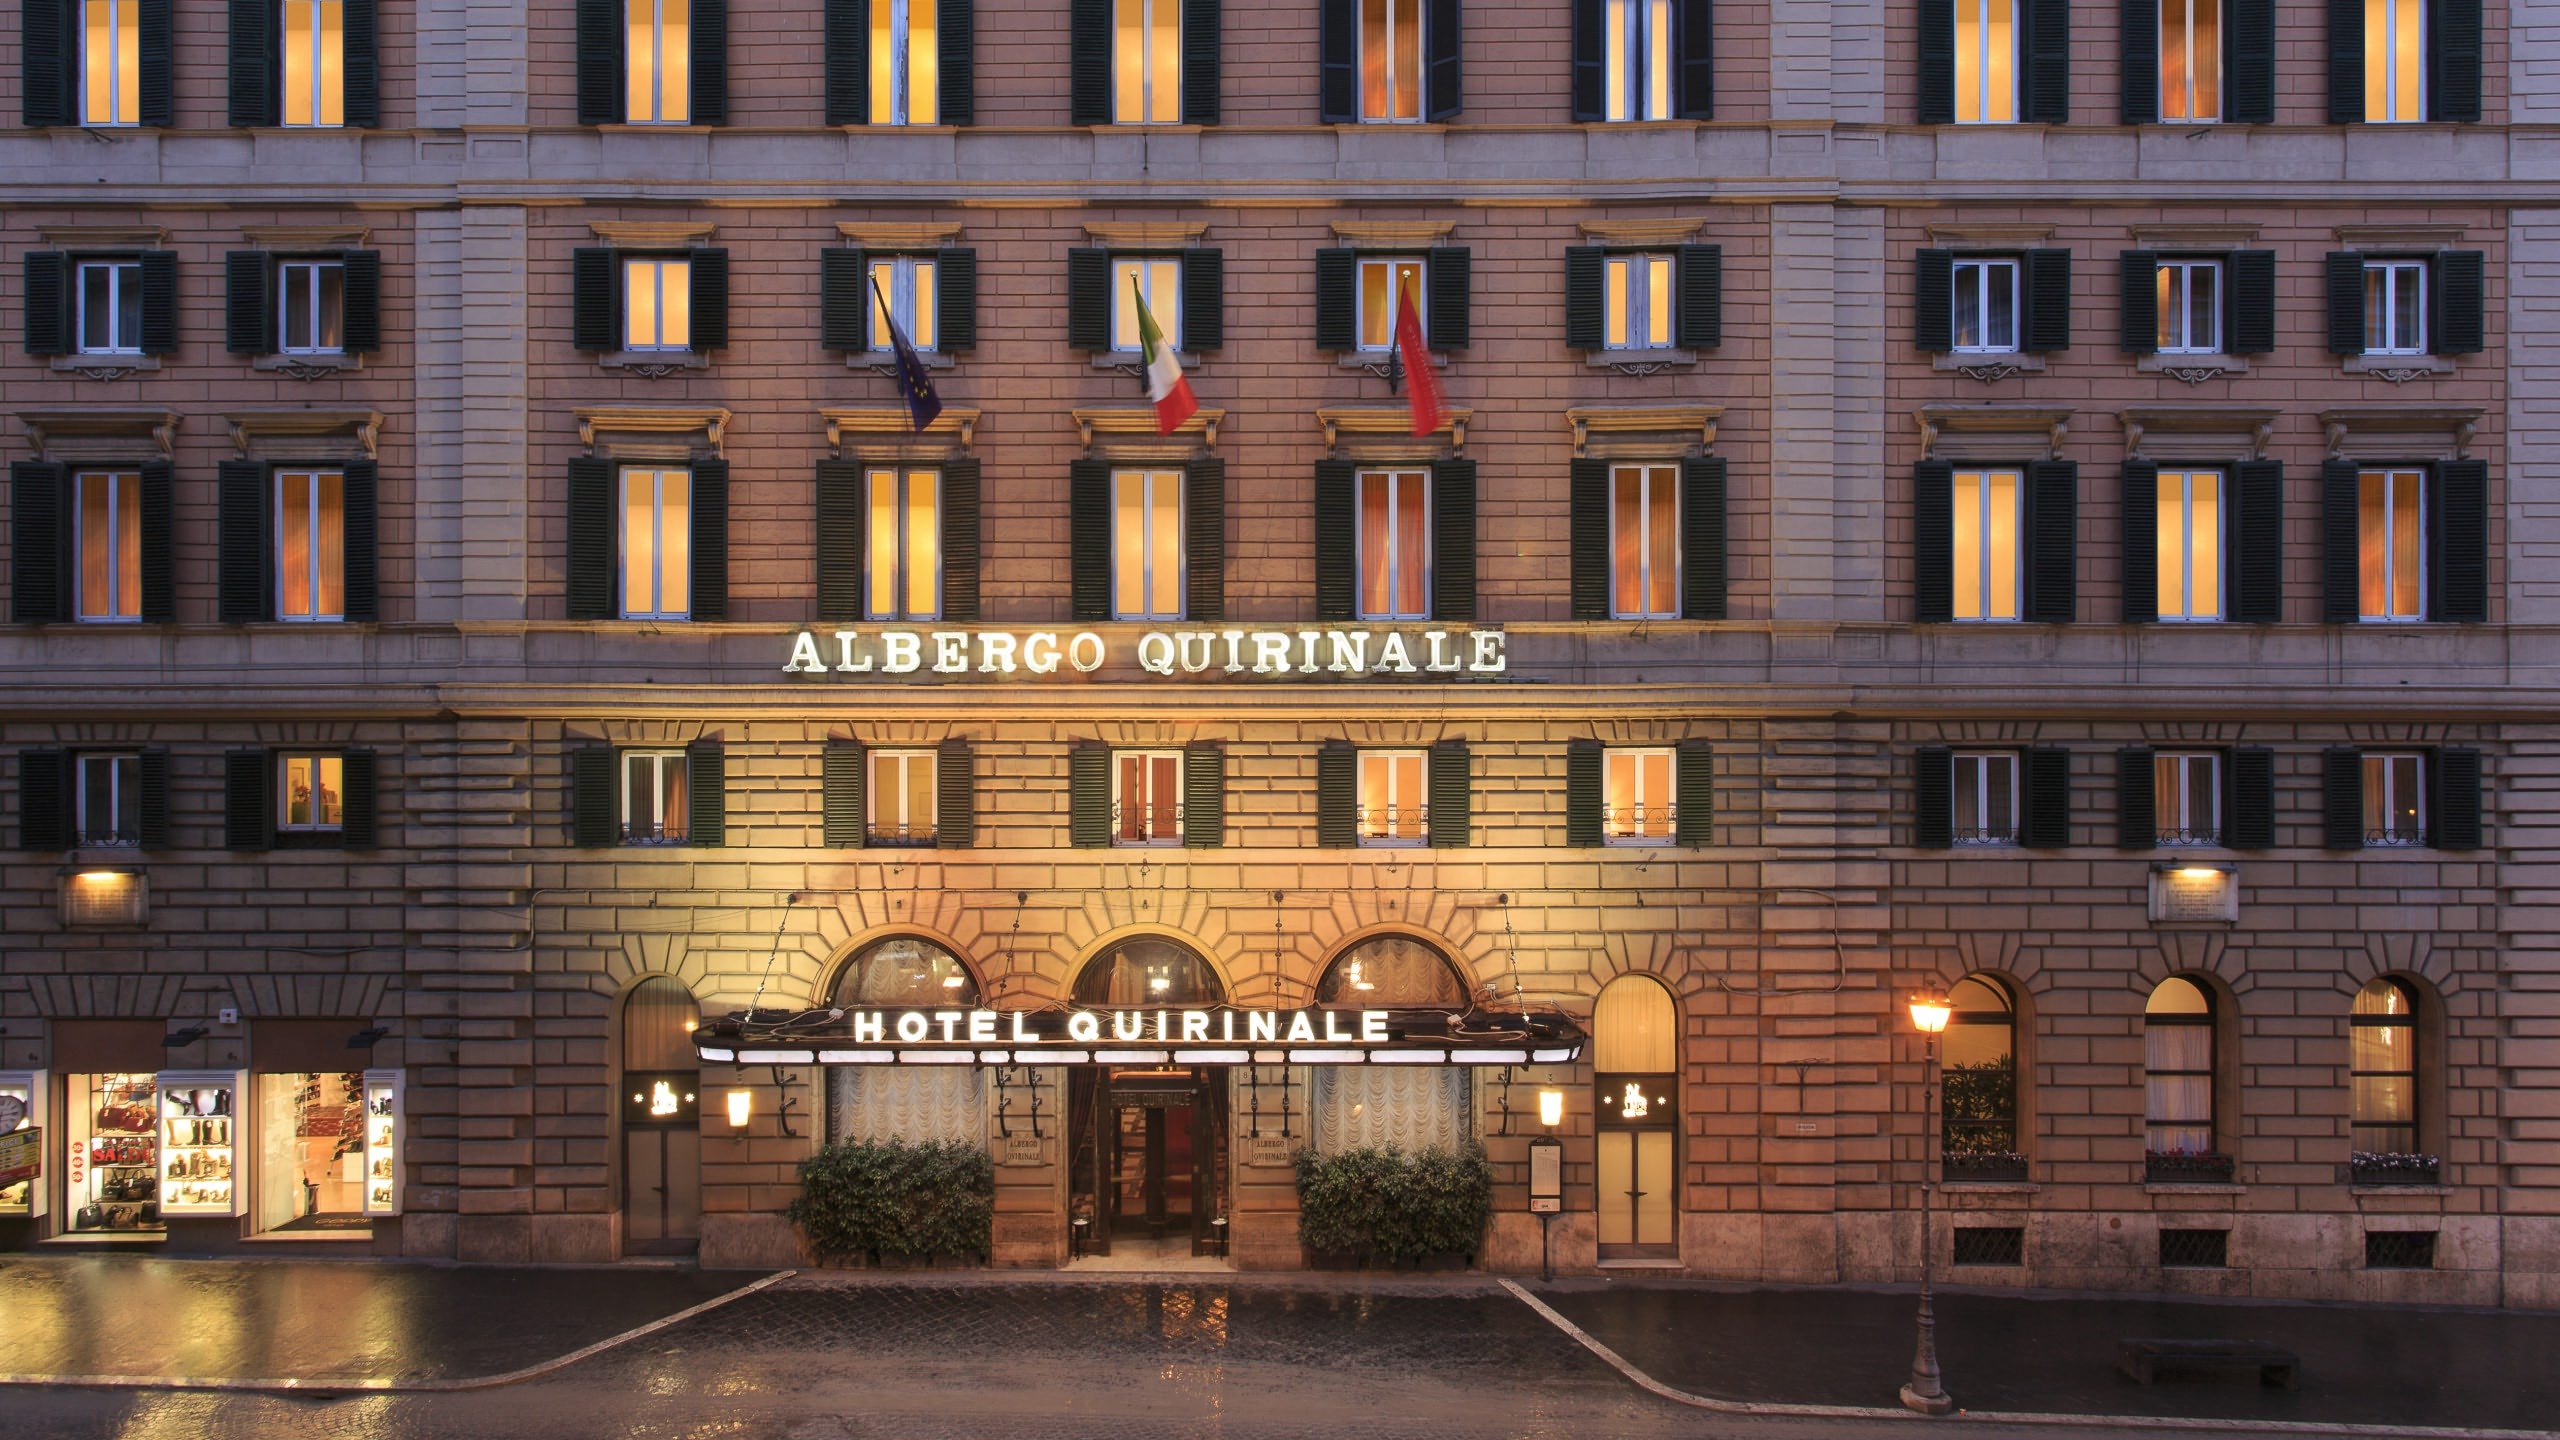 cr. www.hotelquirinale.it